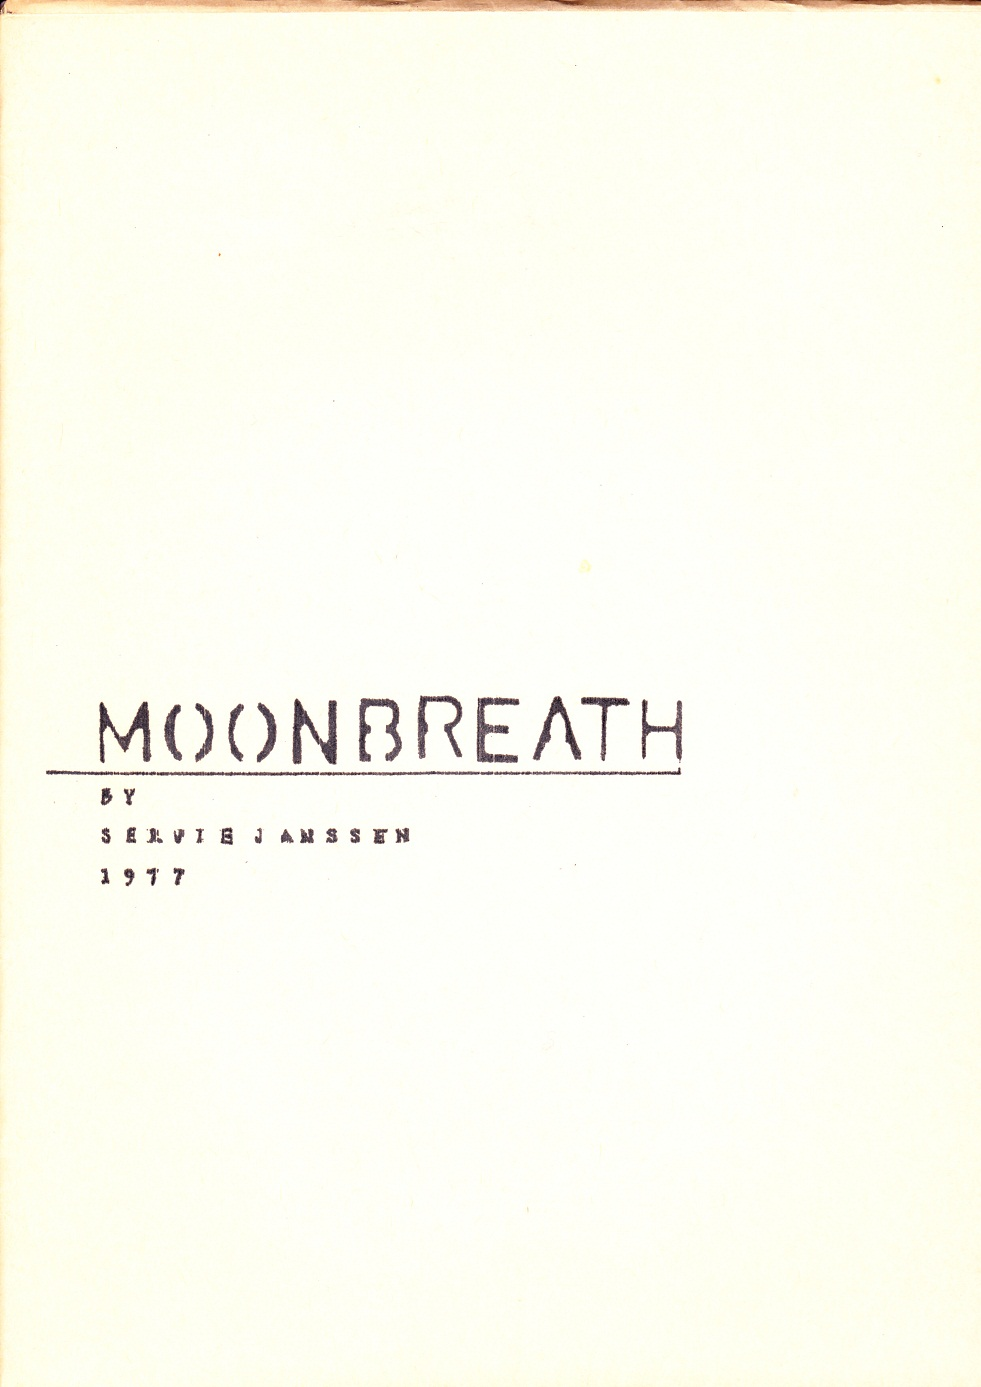 Moonbreath (event),30x23cm.,ed:20,1977,Dreumel(Gld)